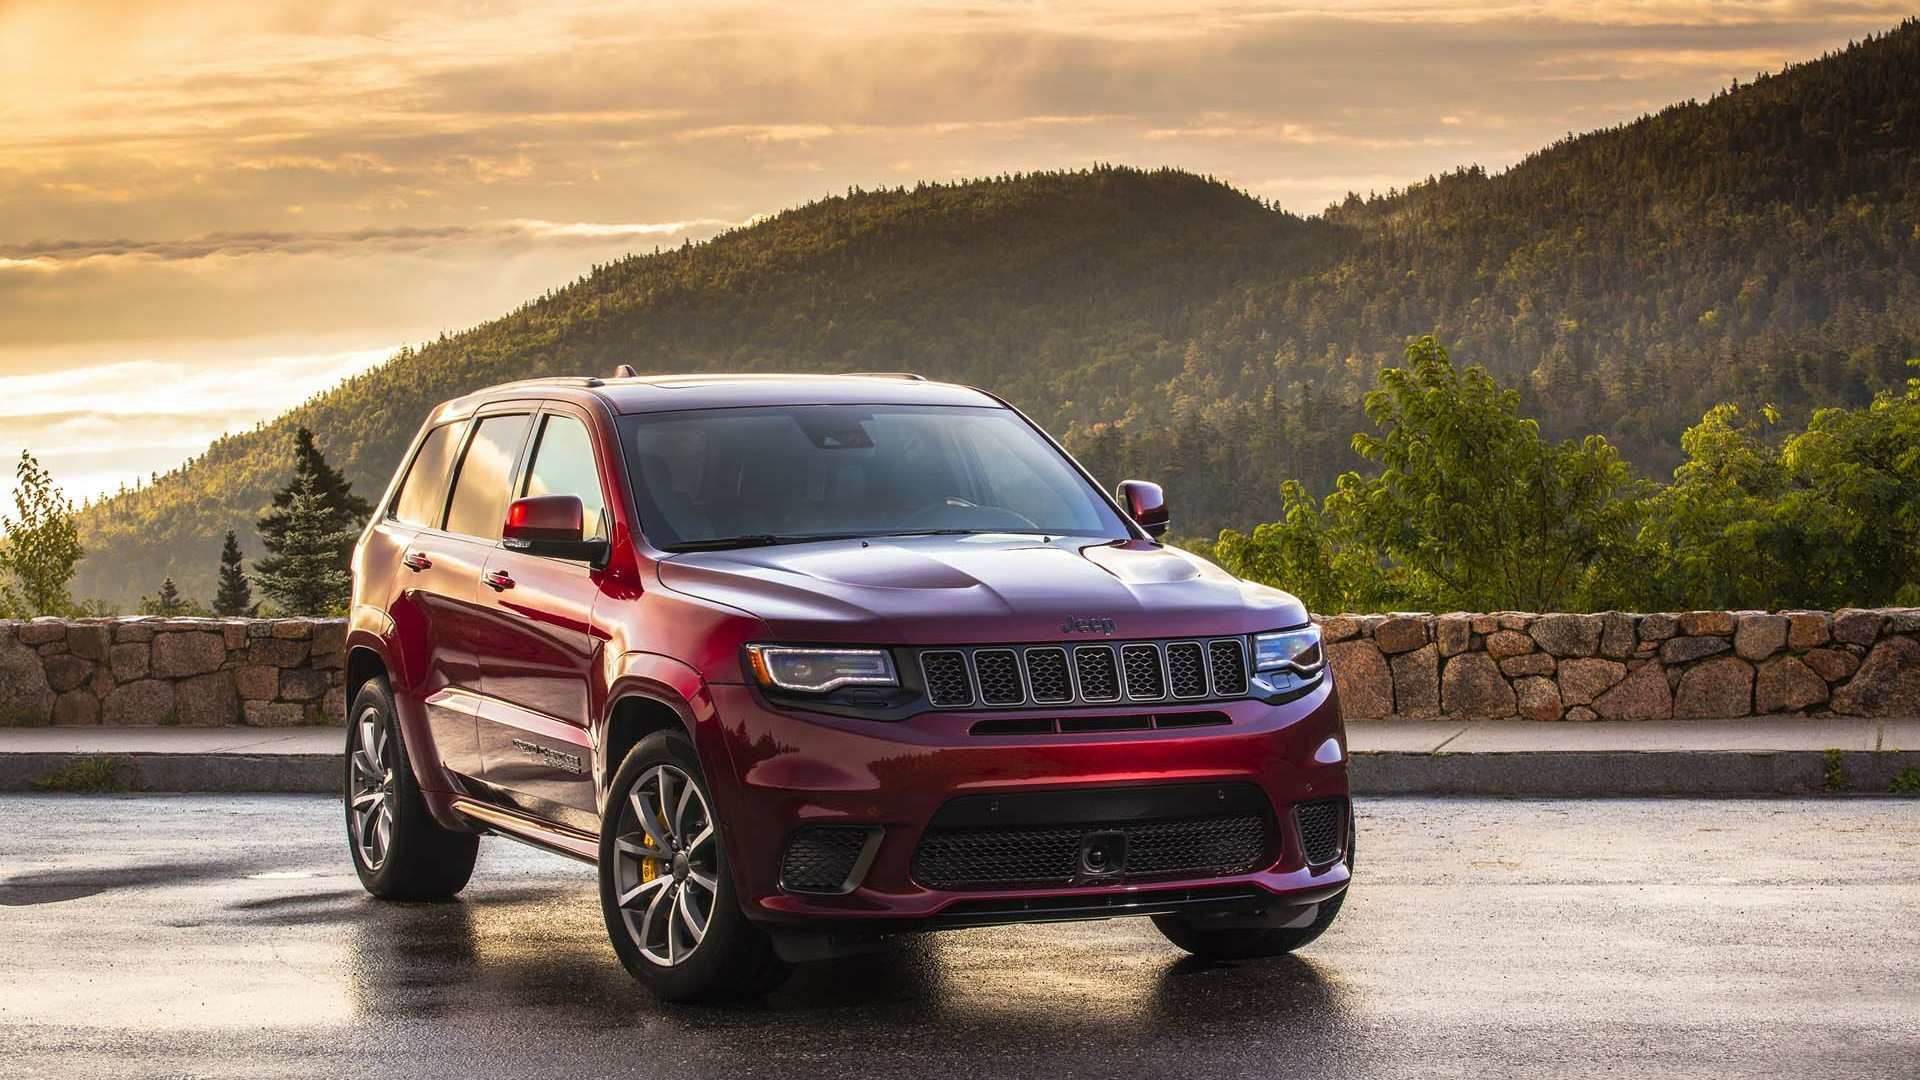 40 New 2020 Grand Cherokee Srt Hellcat First Drive